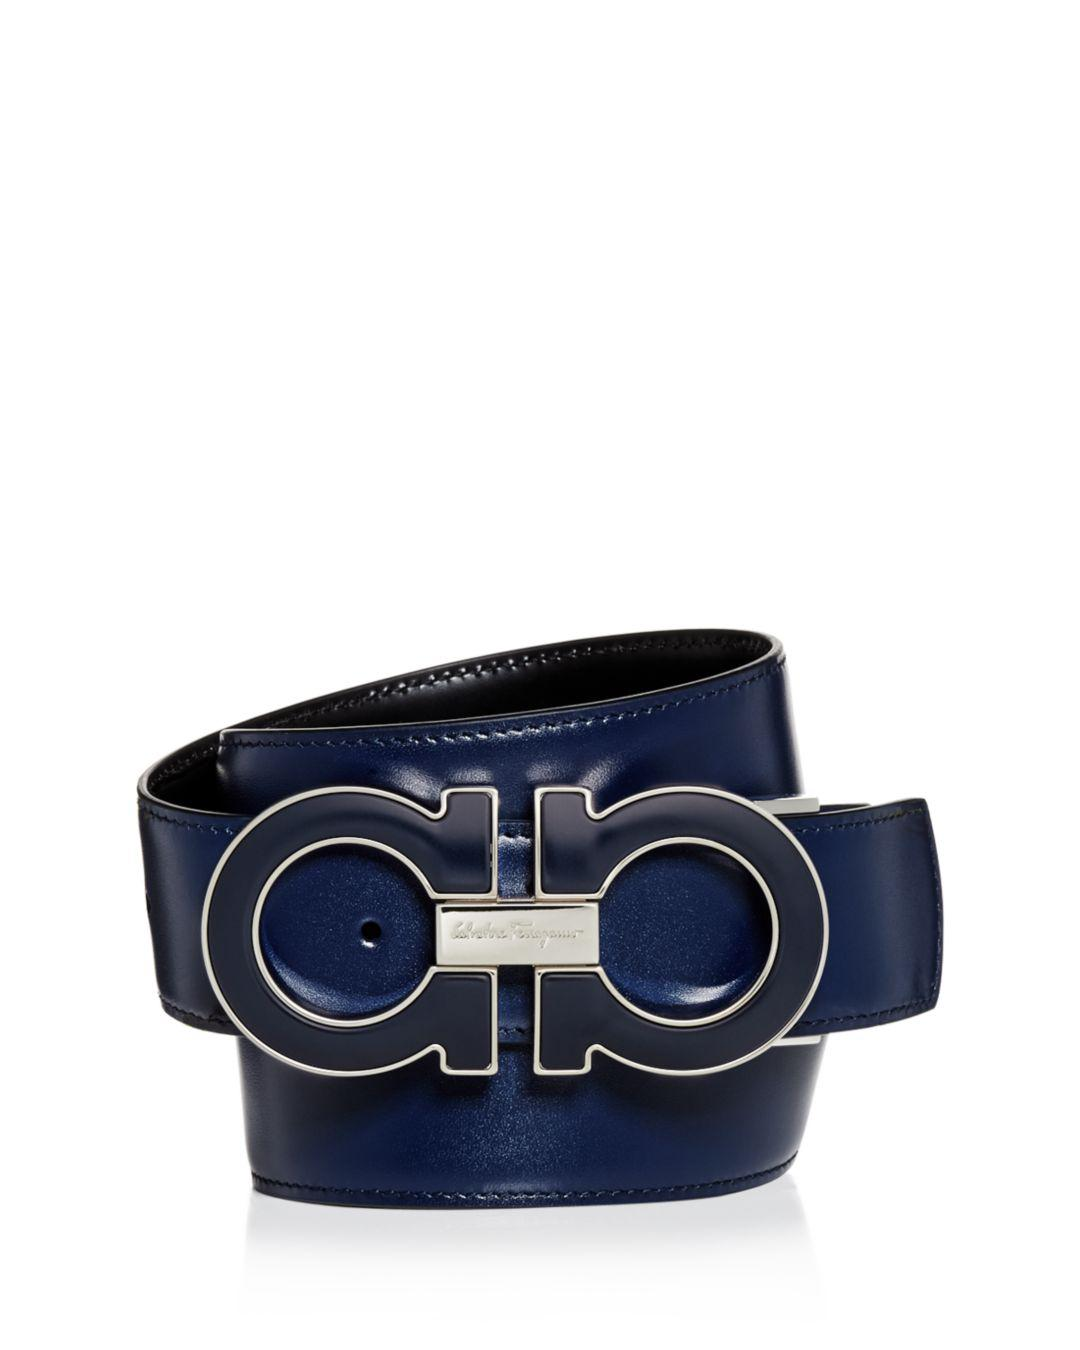 415a6511a0c9f Ferragamo. Men s Blue Oversized Enamel Double Gancini Reversible Leather  Belt